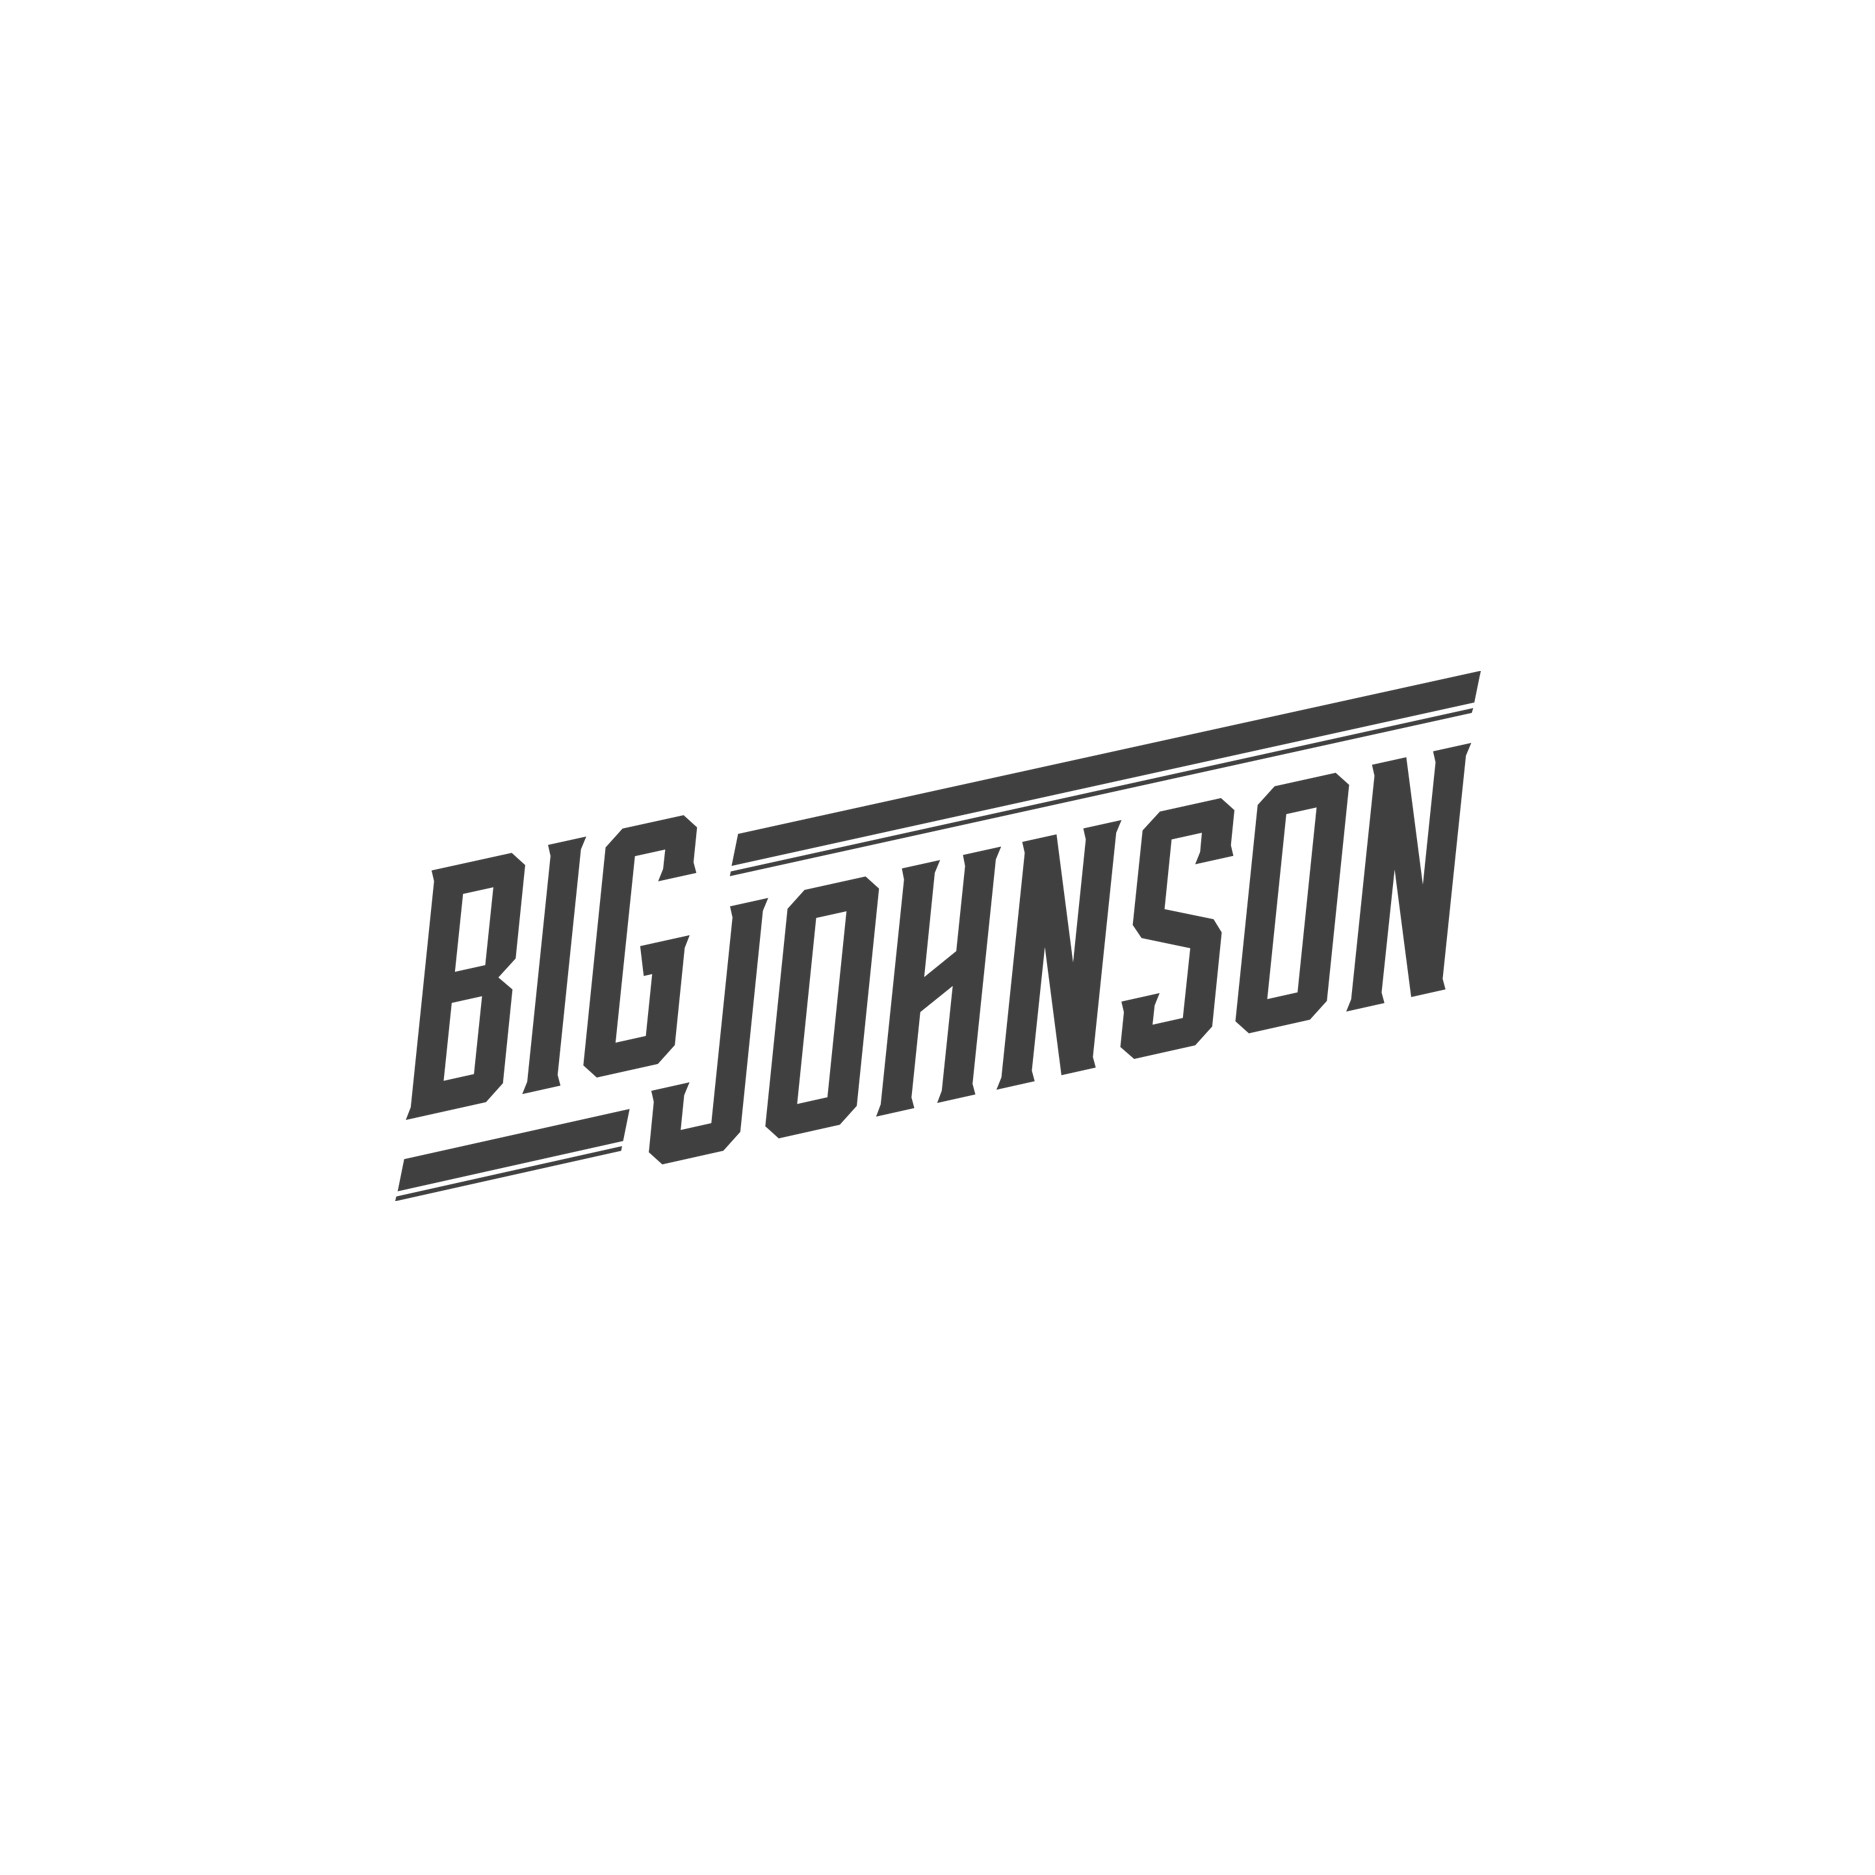 Big Johnson